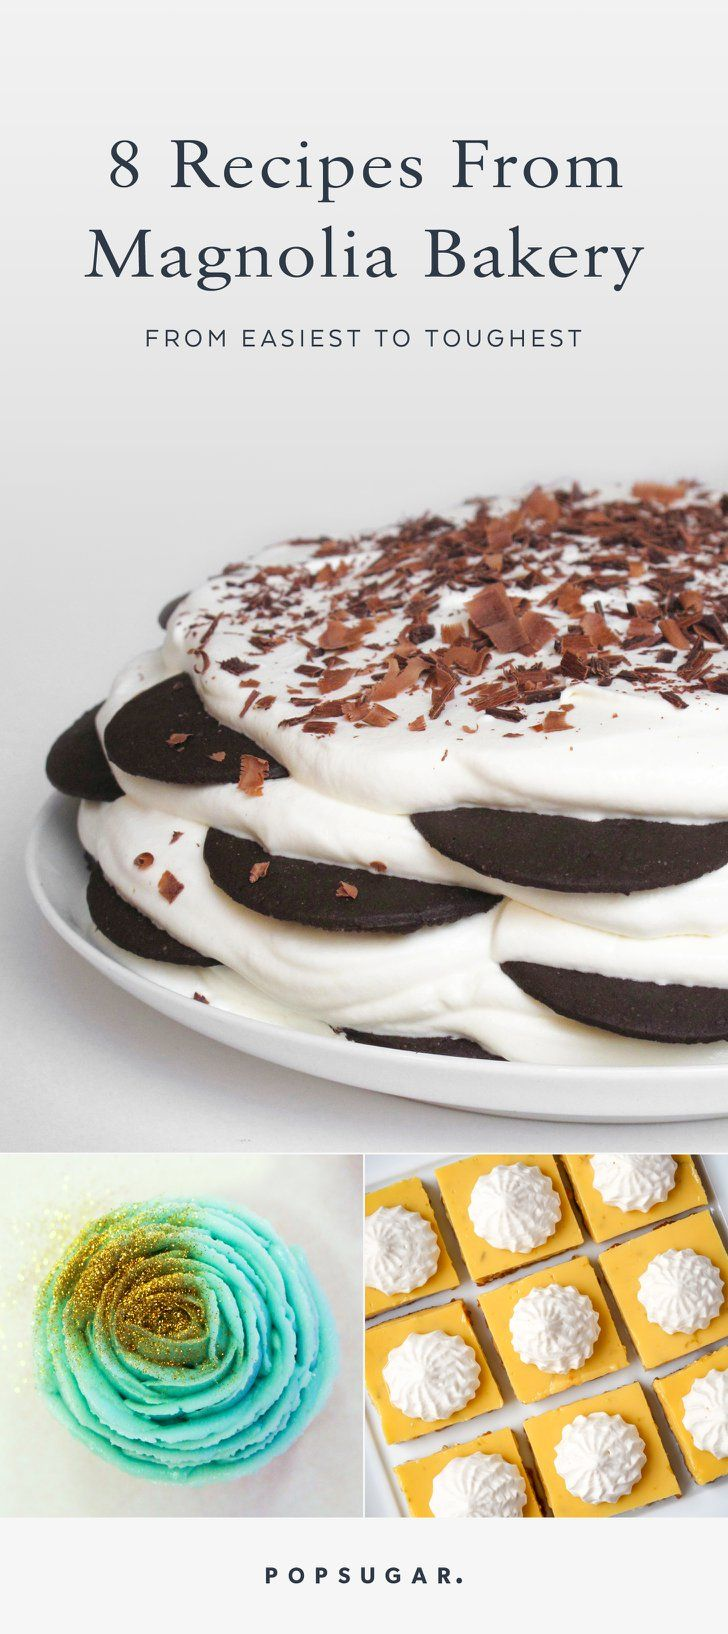 8 Iconic Recipes From Magnolia Bakery, From Easiest to Toughest